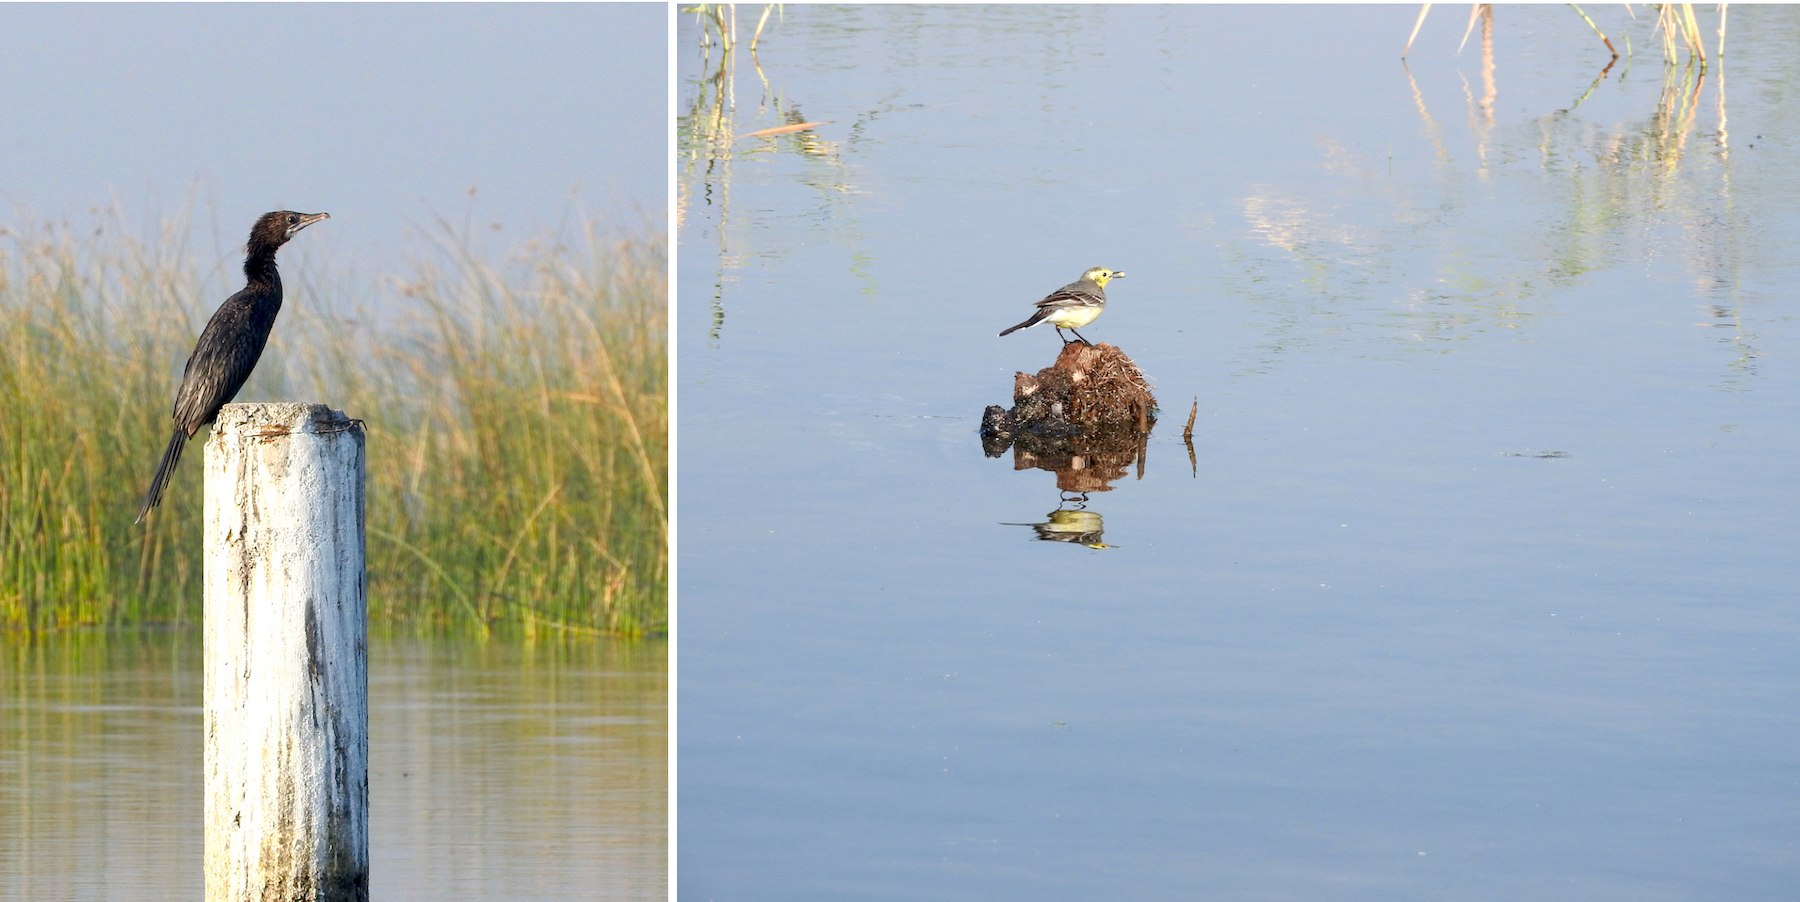 The little cormorant (left) soaking up some sun on a wooden stump is a common sight along the lake. Compared to calm and composed cormorant, the yellow wagtail is a lively bird, constantly wagging its tail and chirping in high-pitched notes. (right). Photos: Charukesi Ramadurai